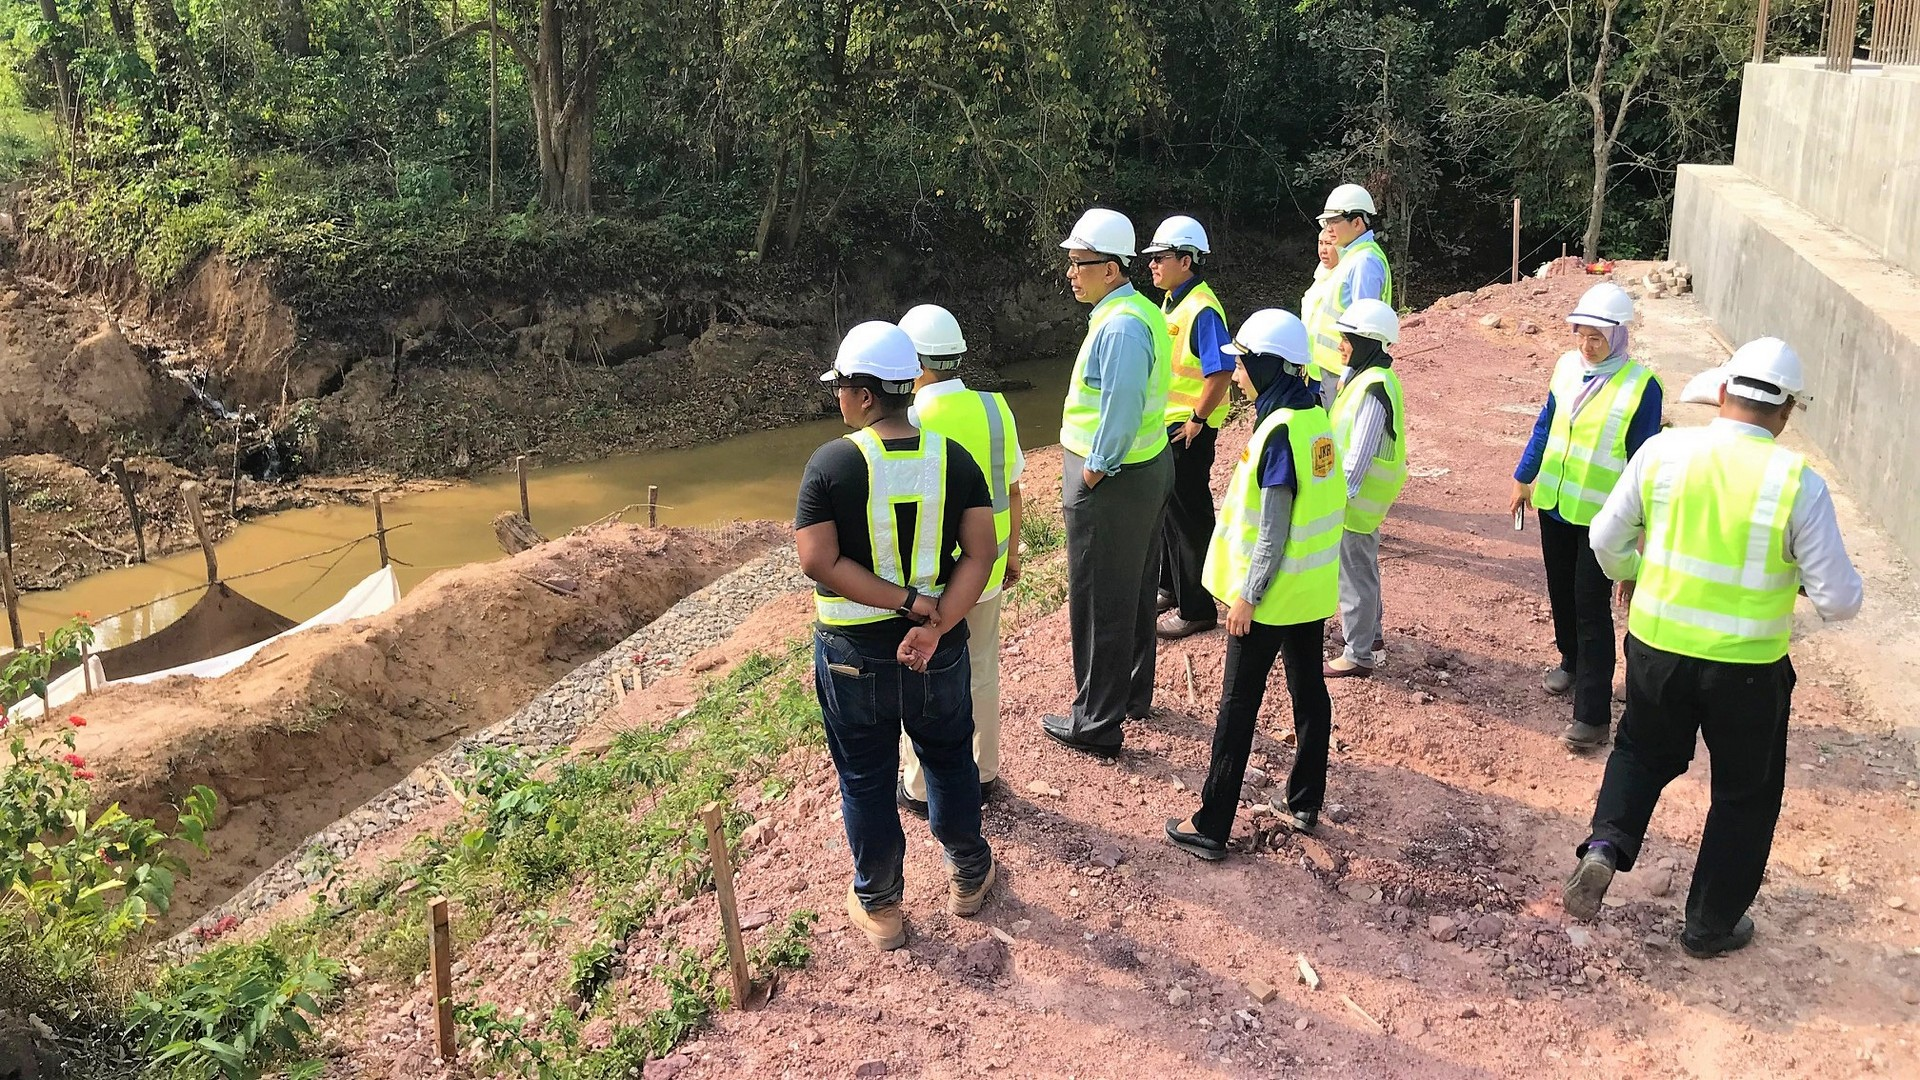 Site Visit at Sg. Jempul with Senior Director and Deputy Officer of the JKR.